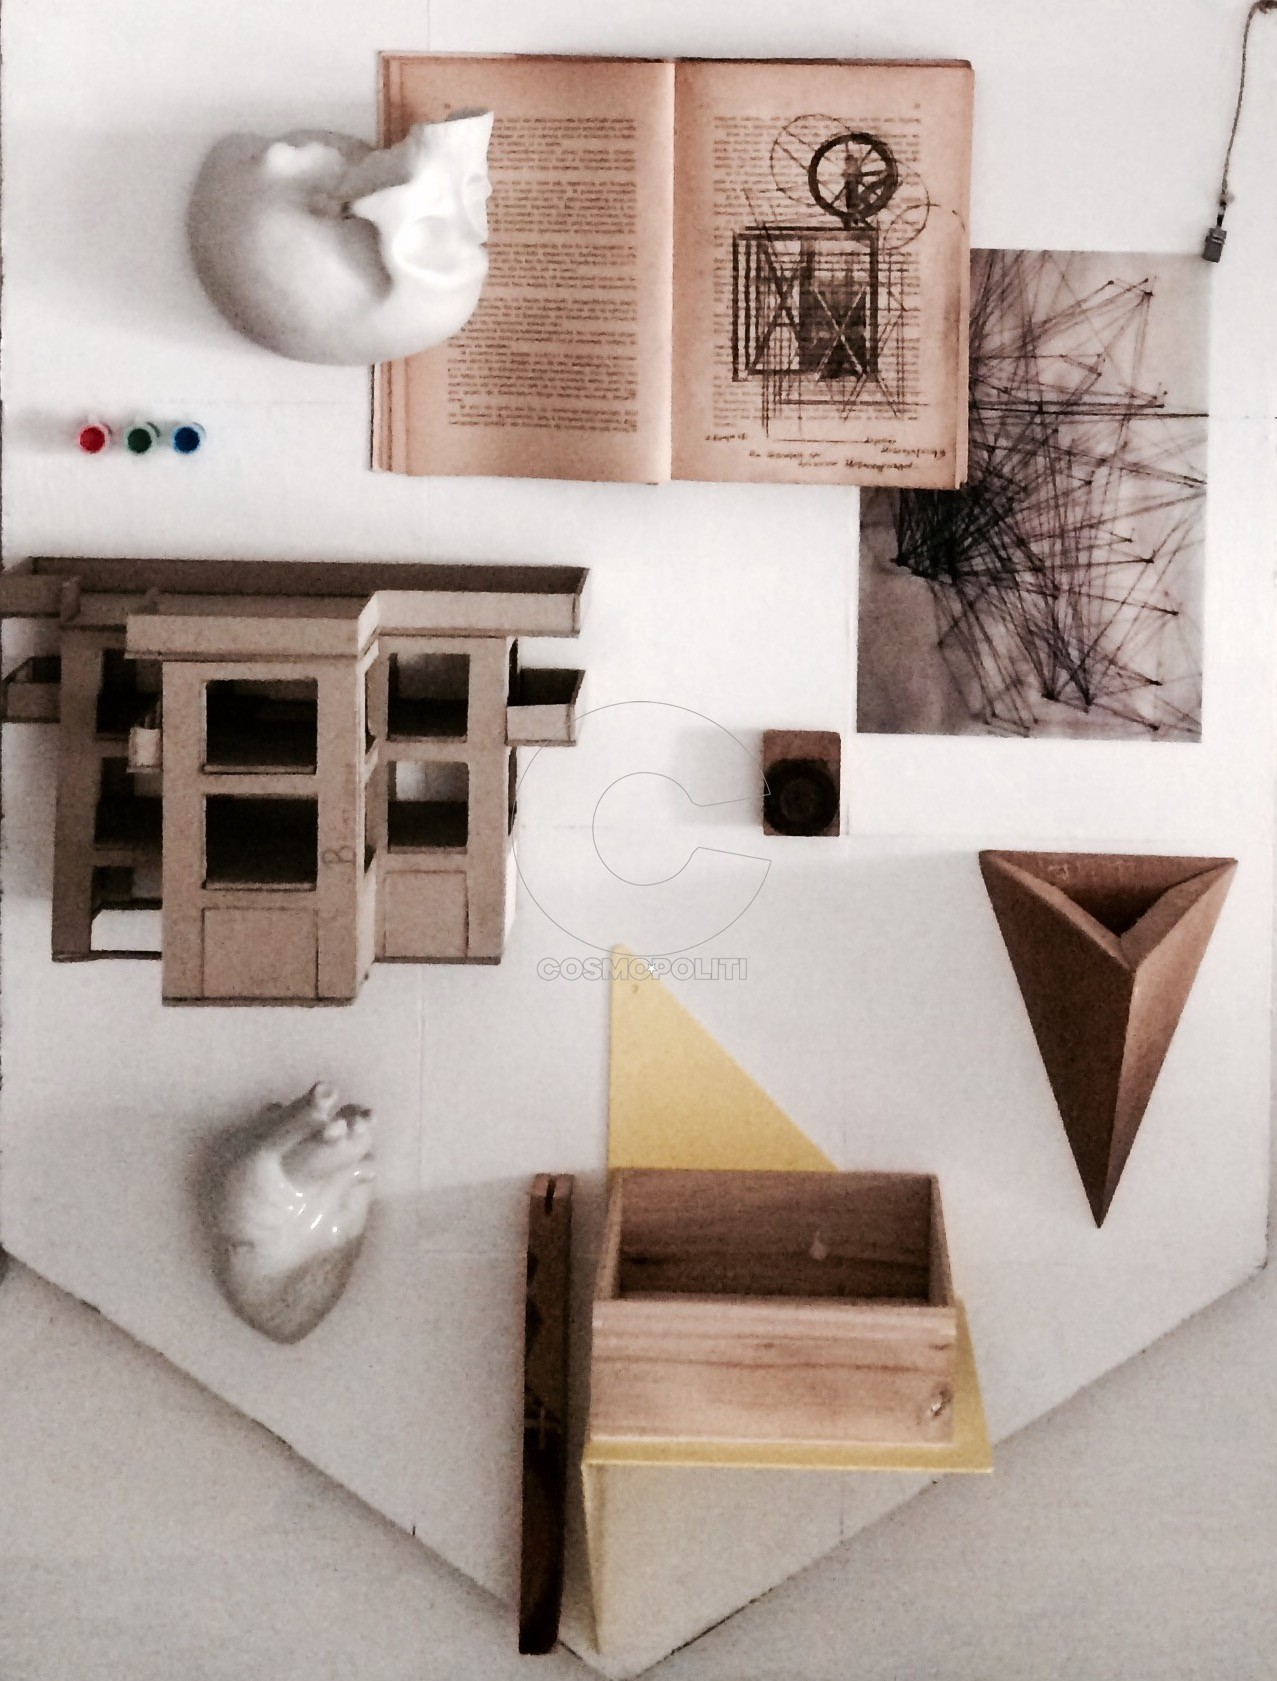 discontinuity images , Drawing, philosofical book, sculpture, architectural maquette, wooden box, photographic slide